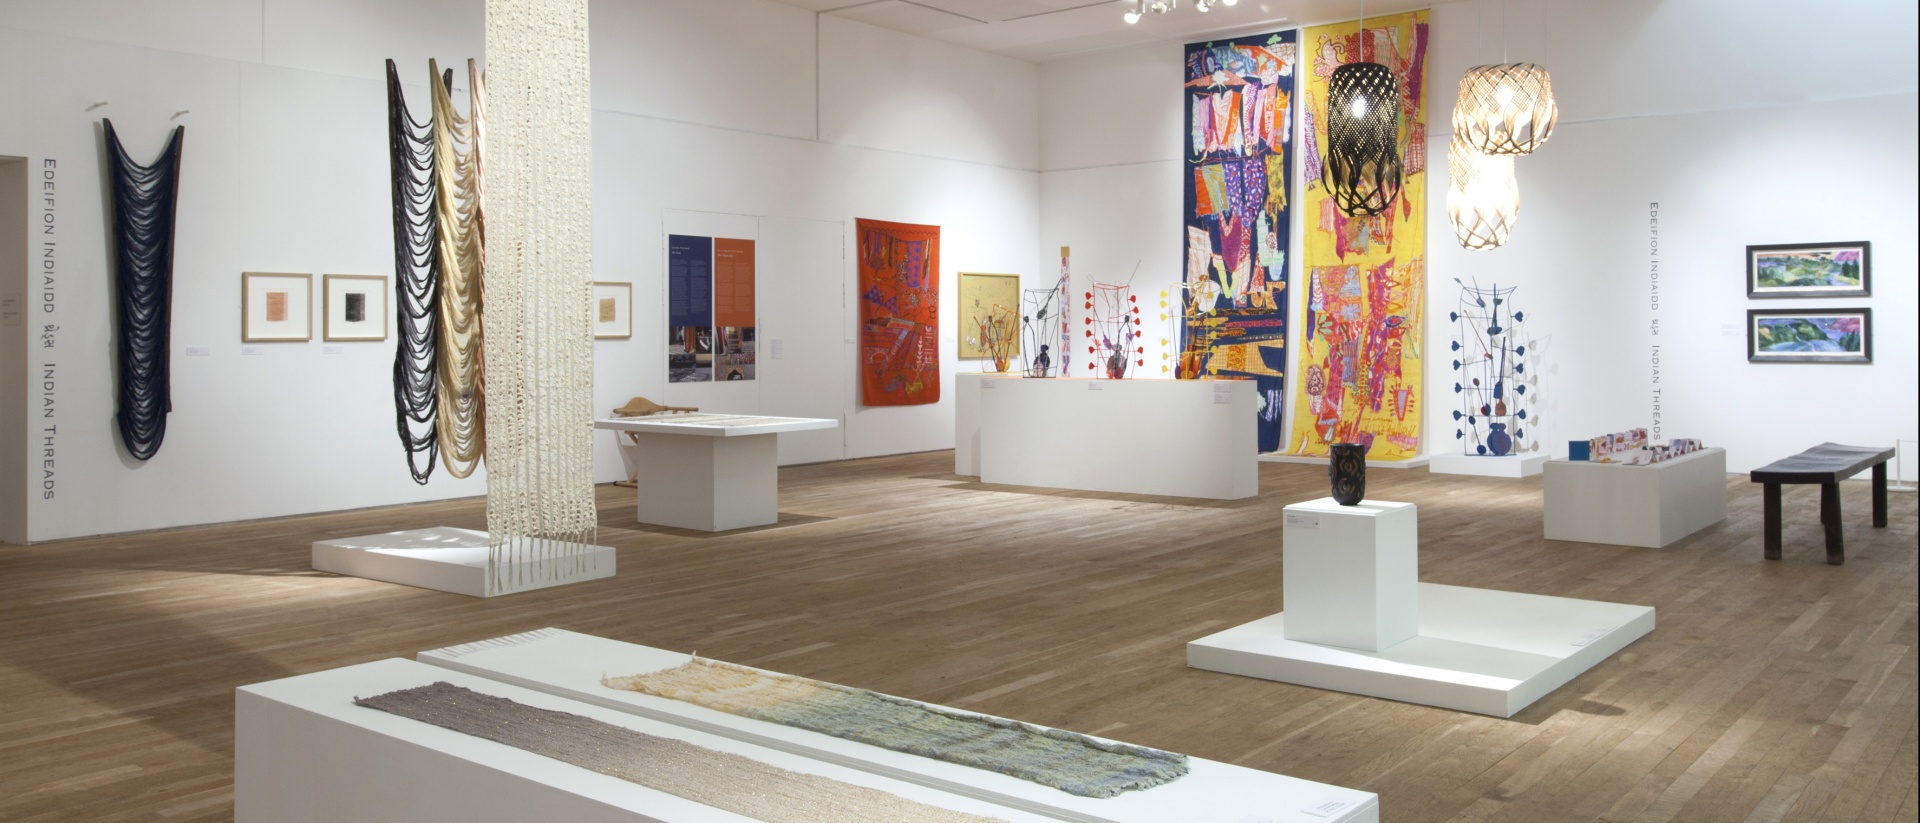 Exhibition of colourful textiles within a white space